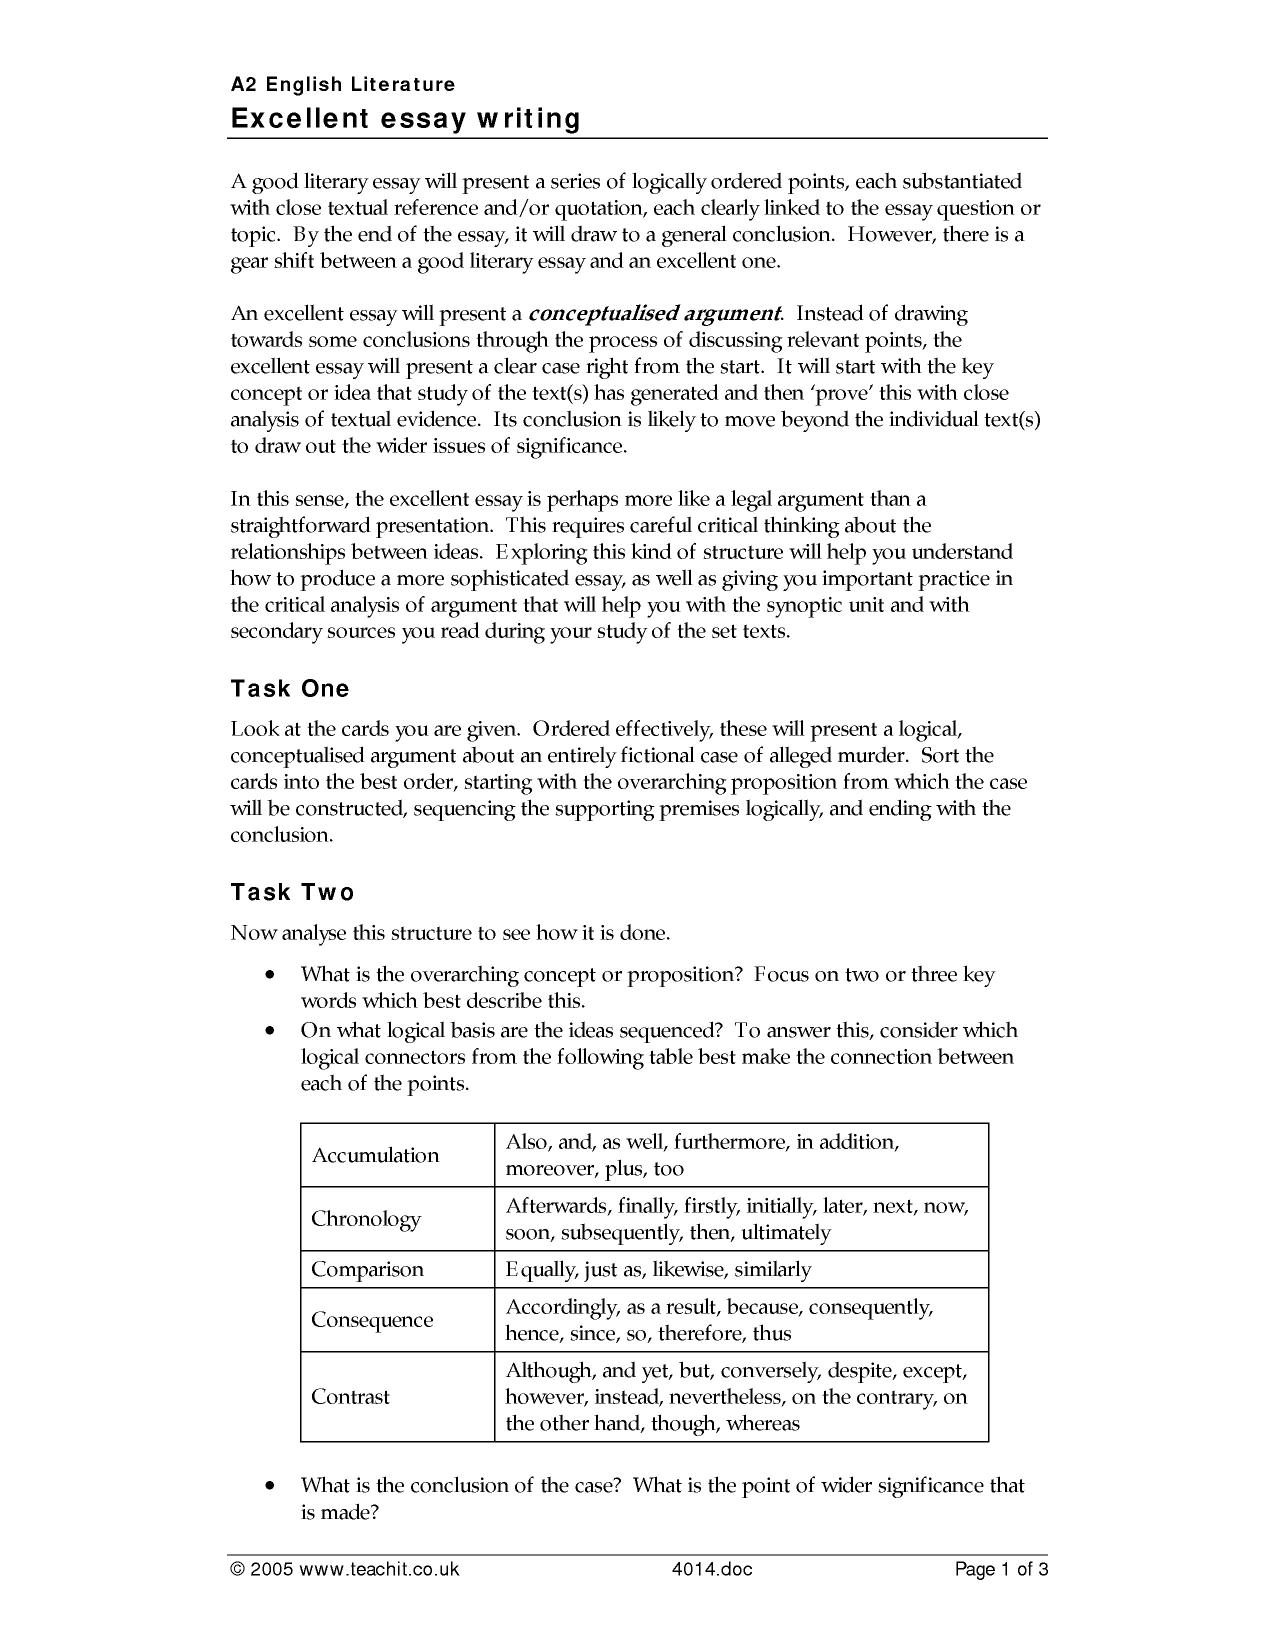 essay writing skills key stage english literature key 4 preview ks5 excellent essay writing